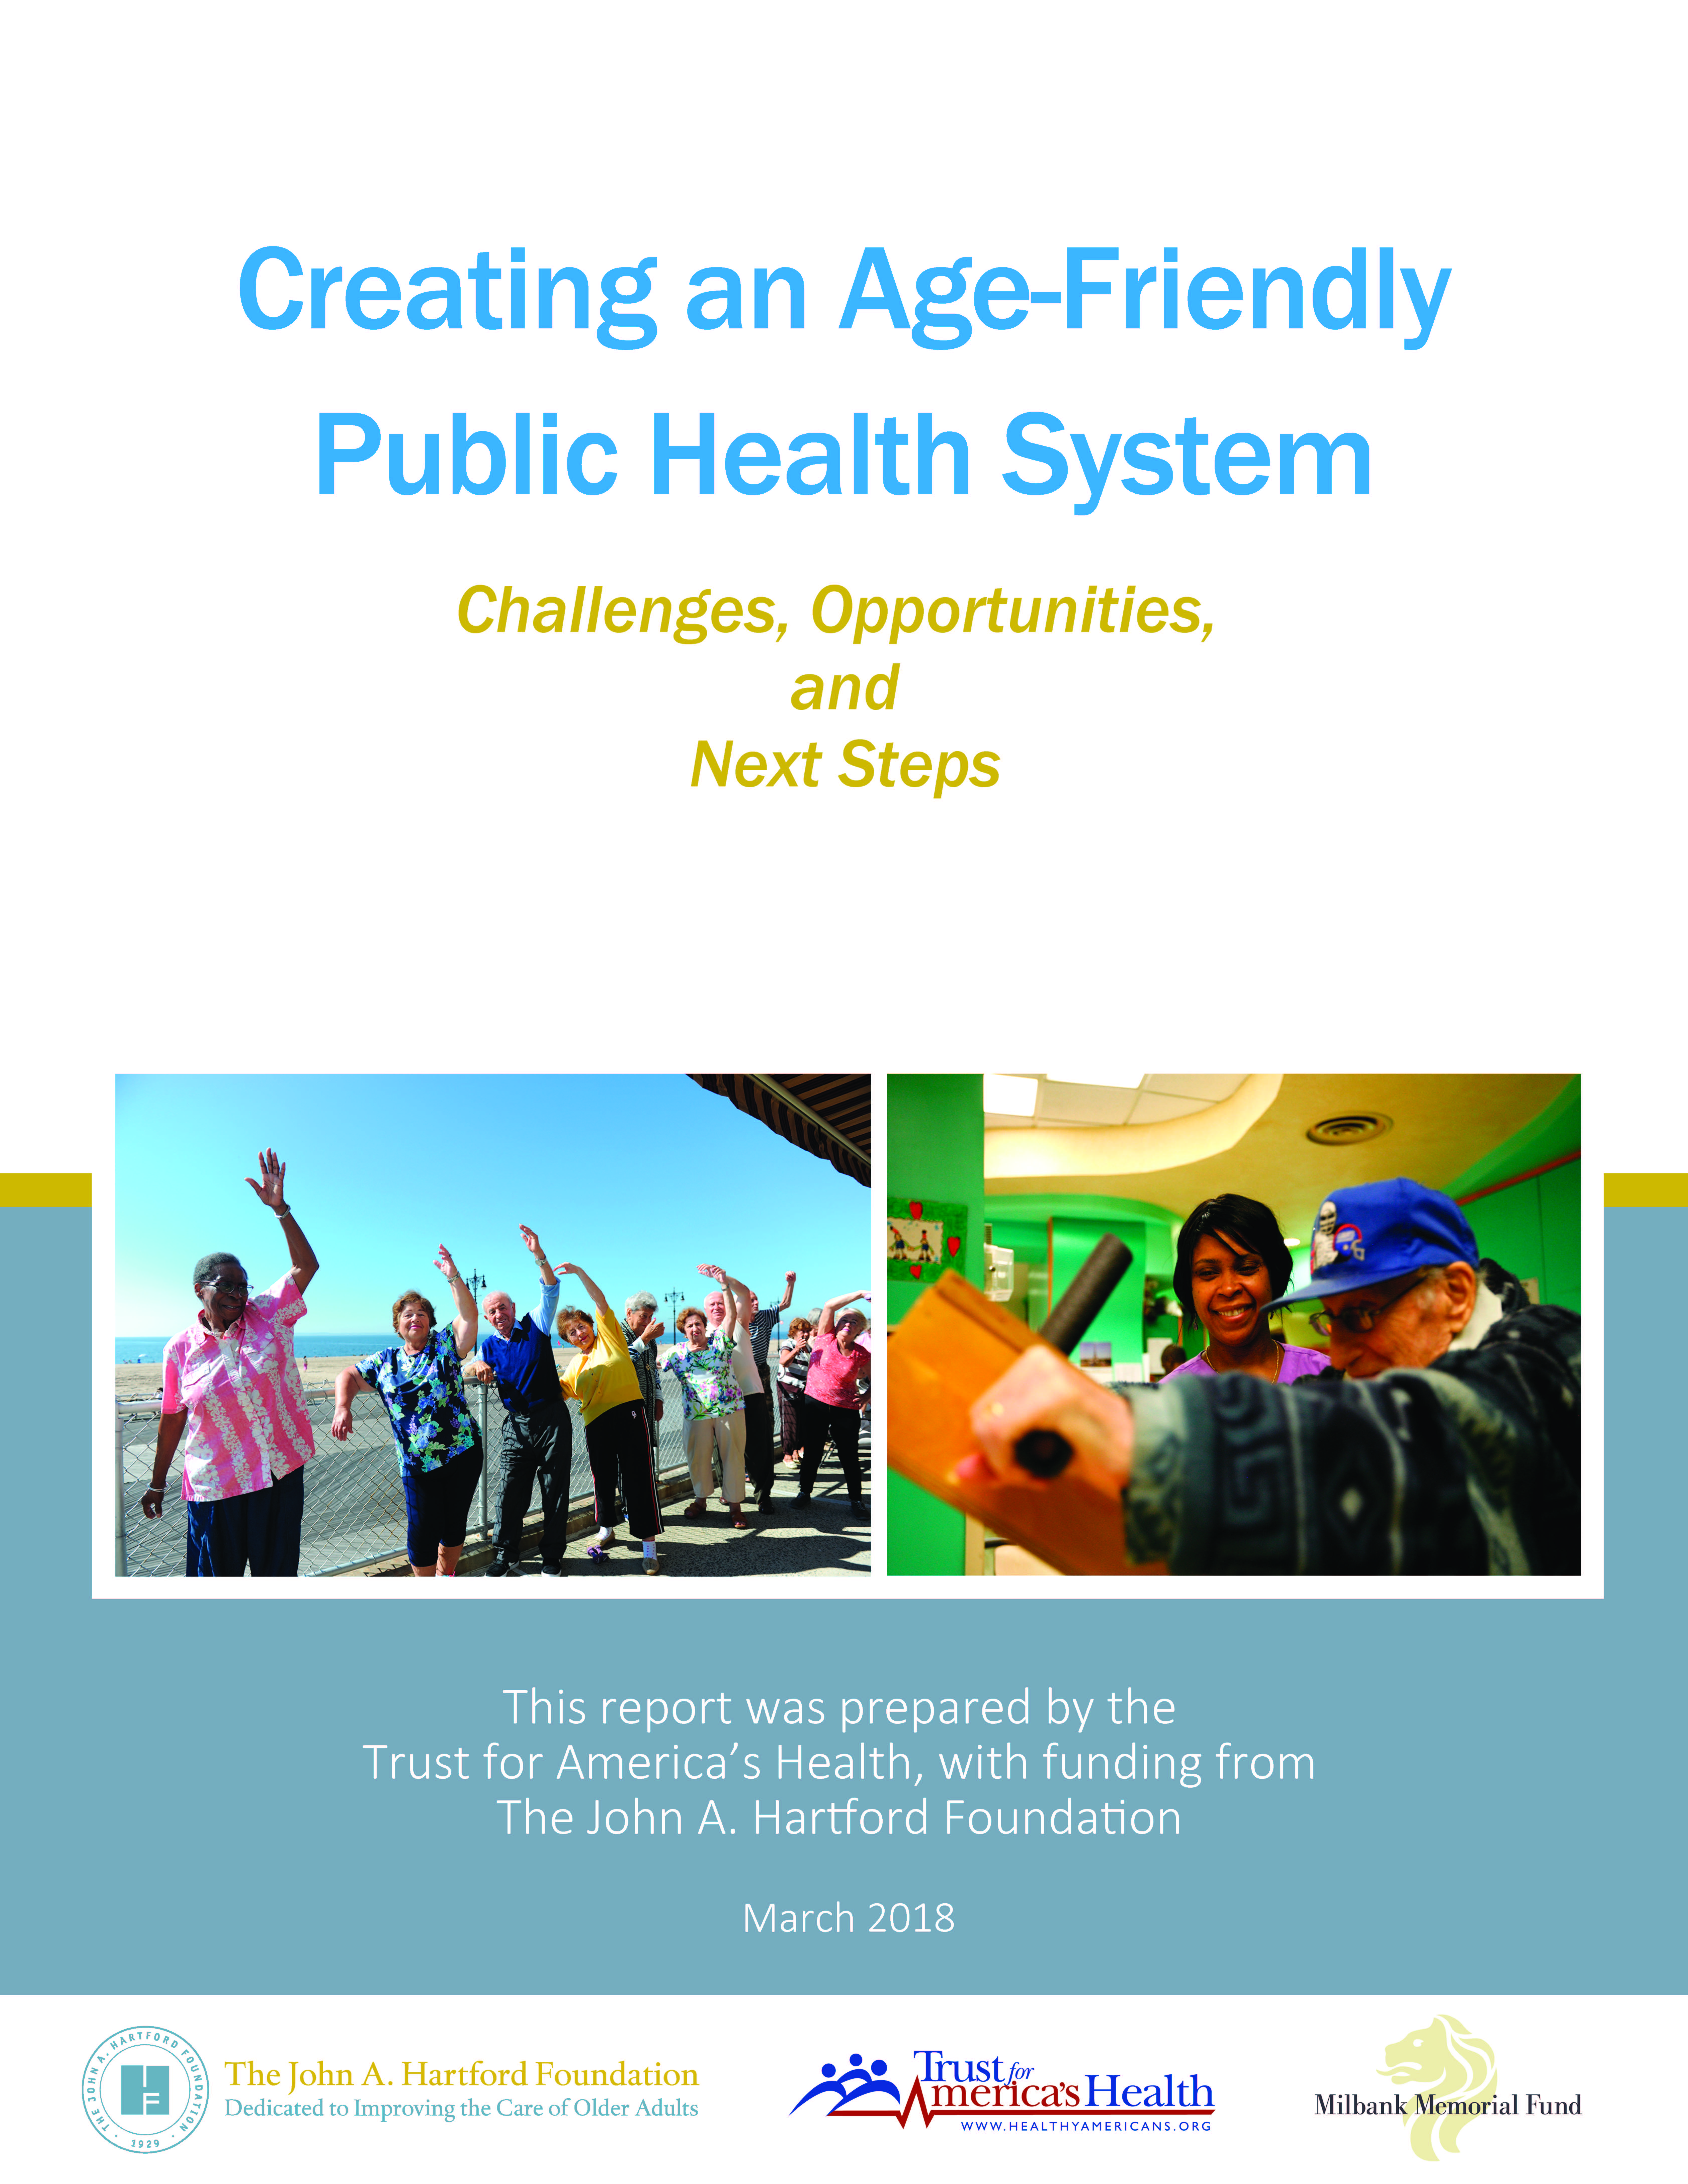 Creating An Age-Friendly Public Health System: Challenges, Opportunities, and Next Steps